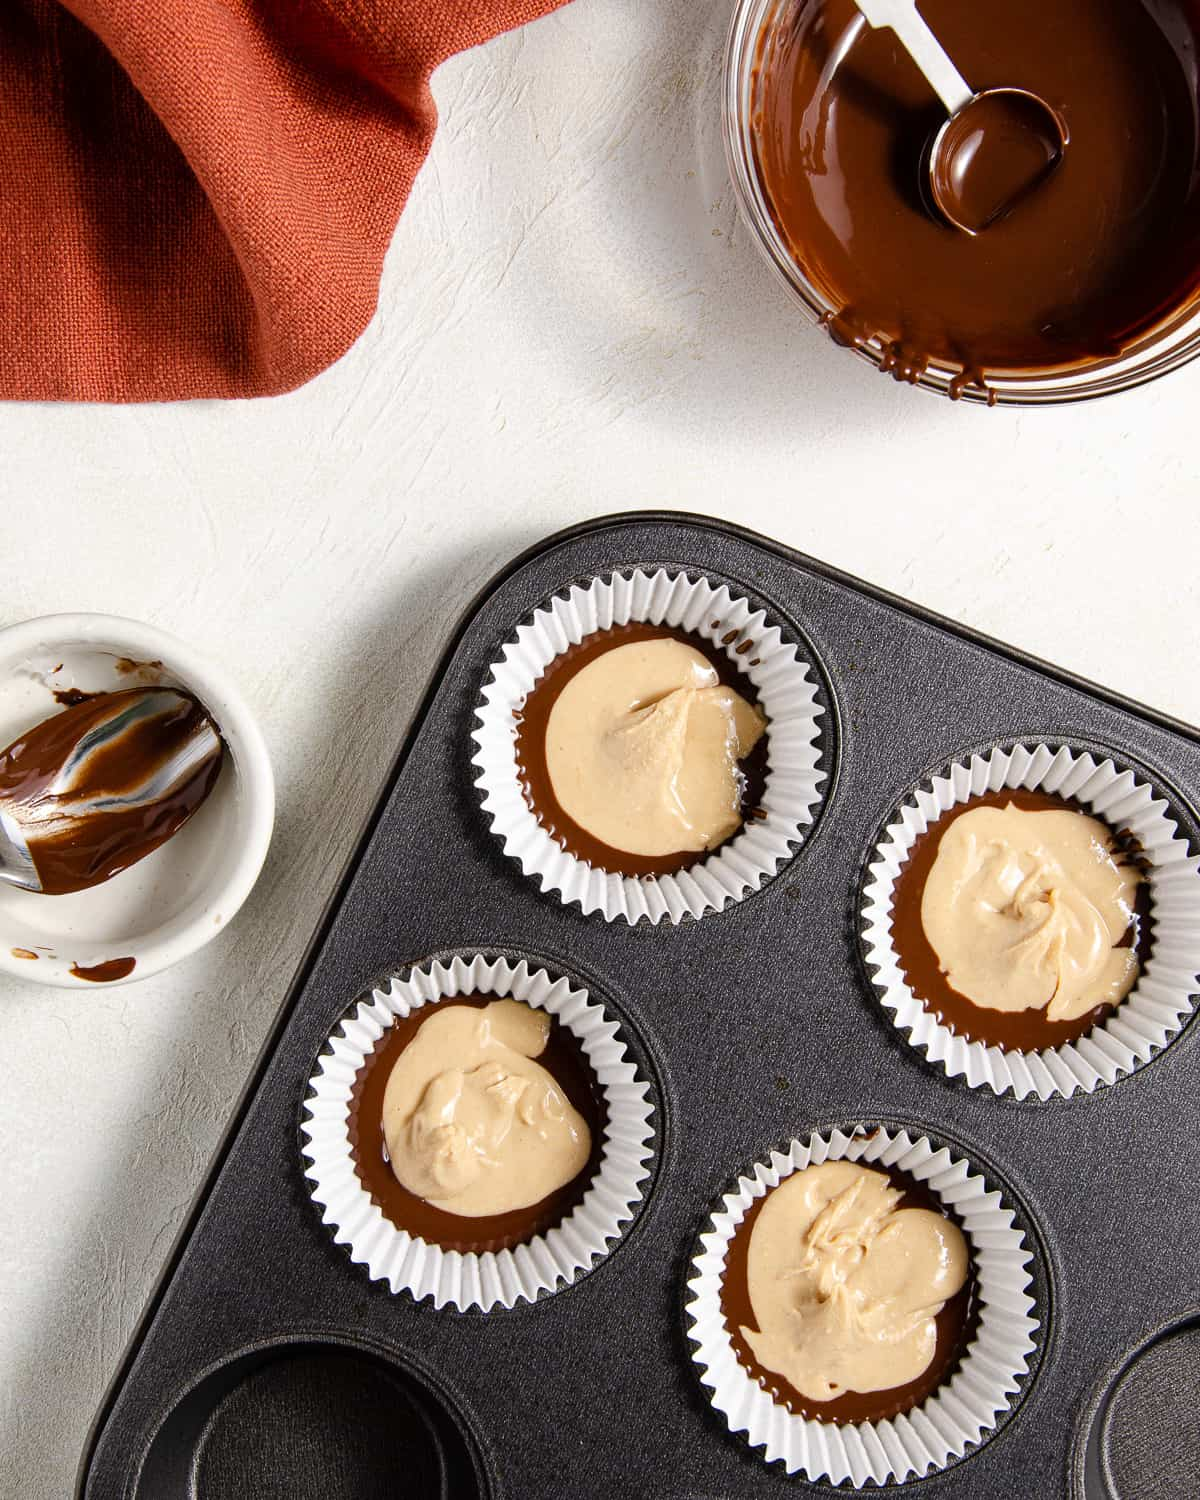 Cashew butter on top of melted chocolate for making cashew butter cups.